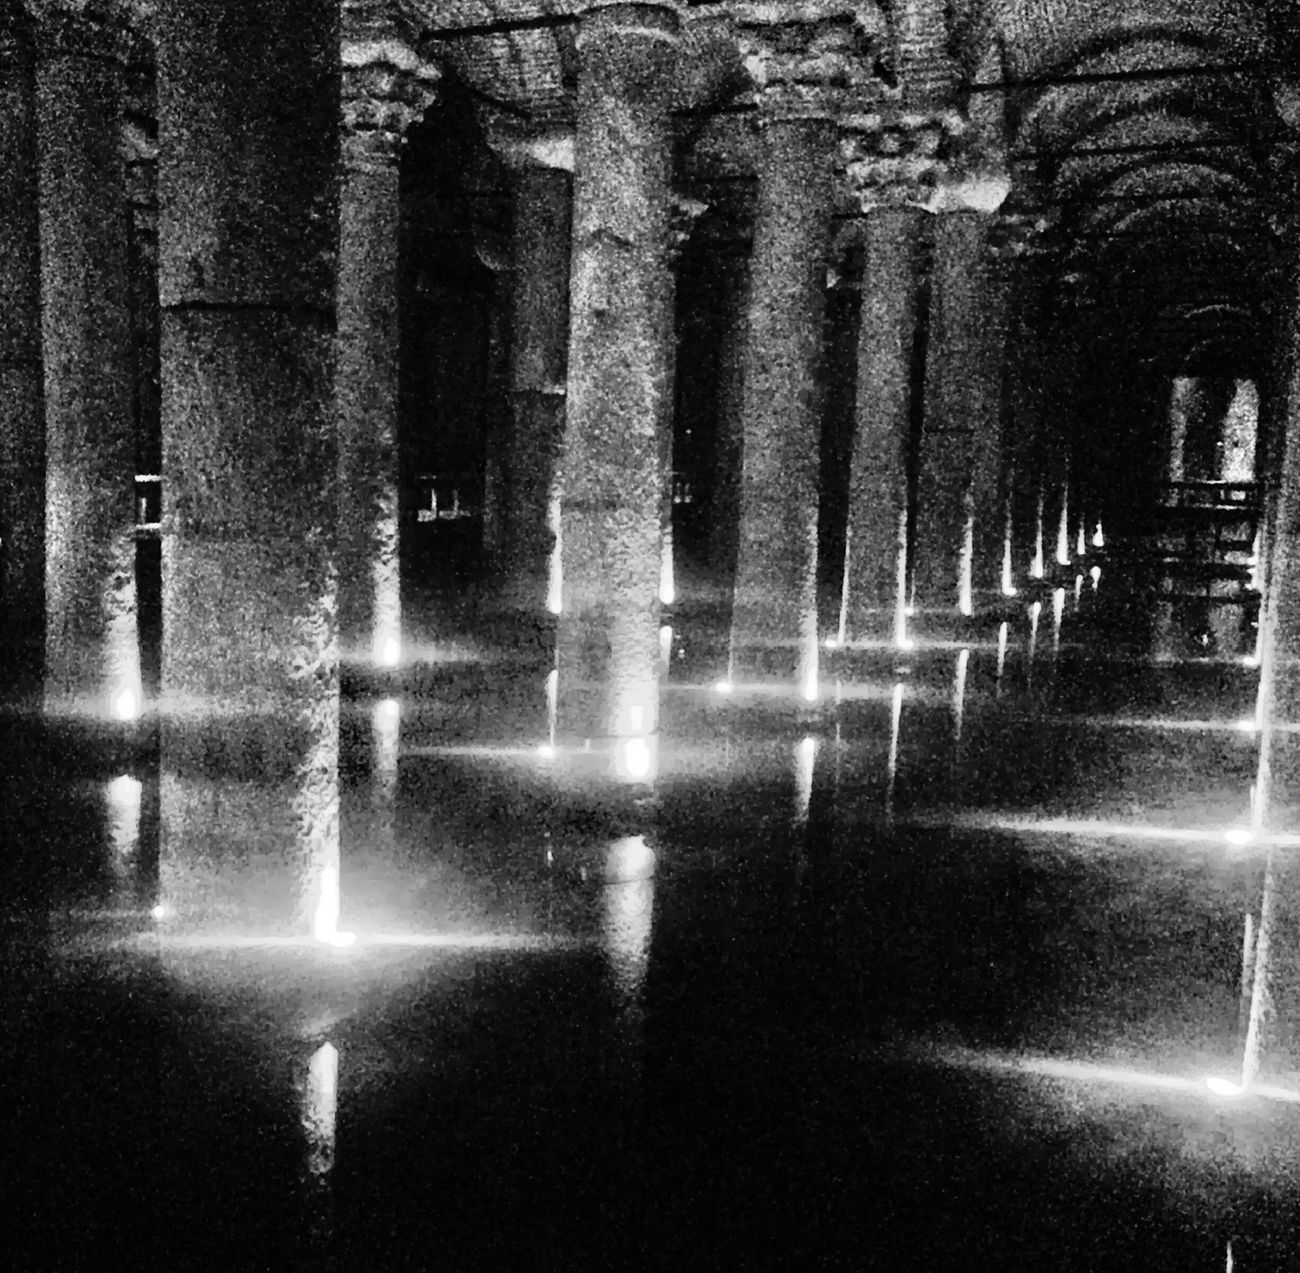 Istanbul Yerebatan Sarnıcı Istanbuldayasam Blackandwhite Basilica Eyemblackandwhite Cisterna Basilikacistern Black & White Yerebatan Black And White Cistern Symmetryporn Symmetry_art Blackandwhite Photography Black White Yerebatansarnıcı Istanbul Turkey Secret Places Good Vibes ✌